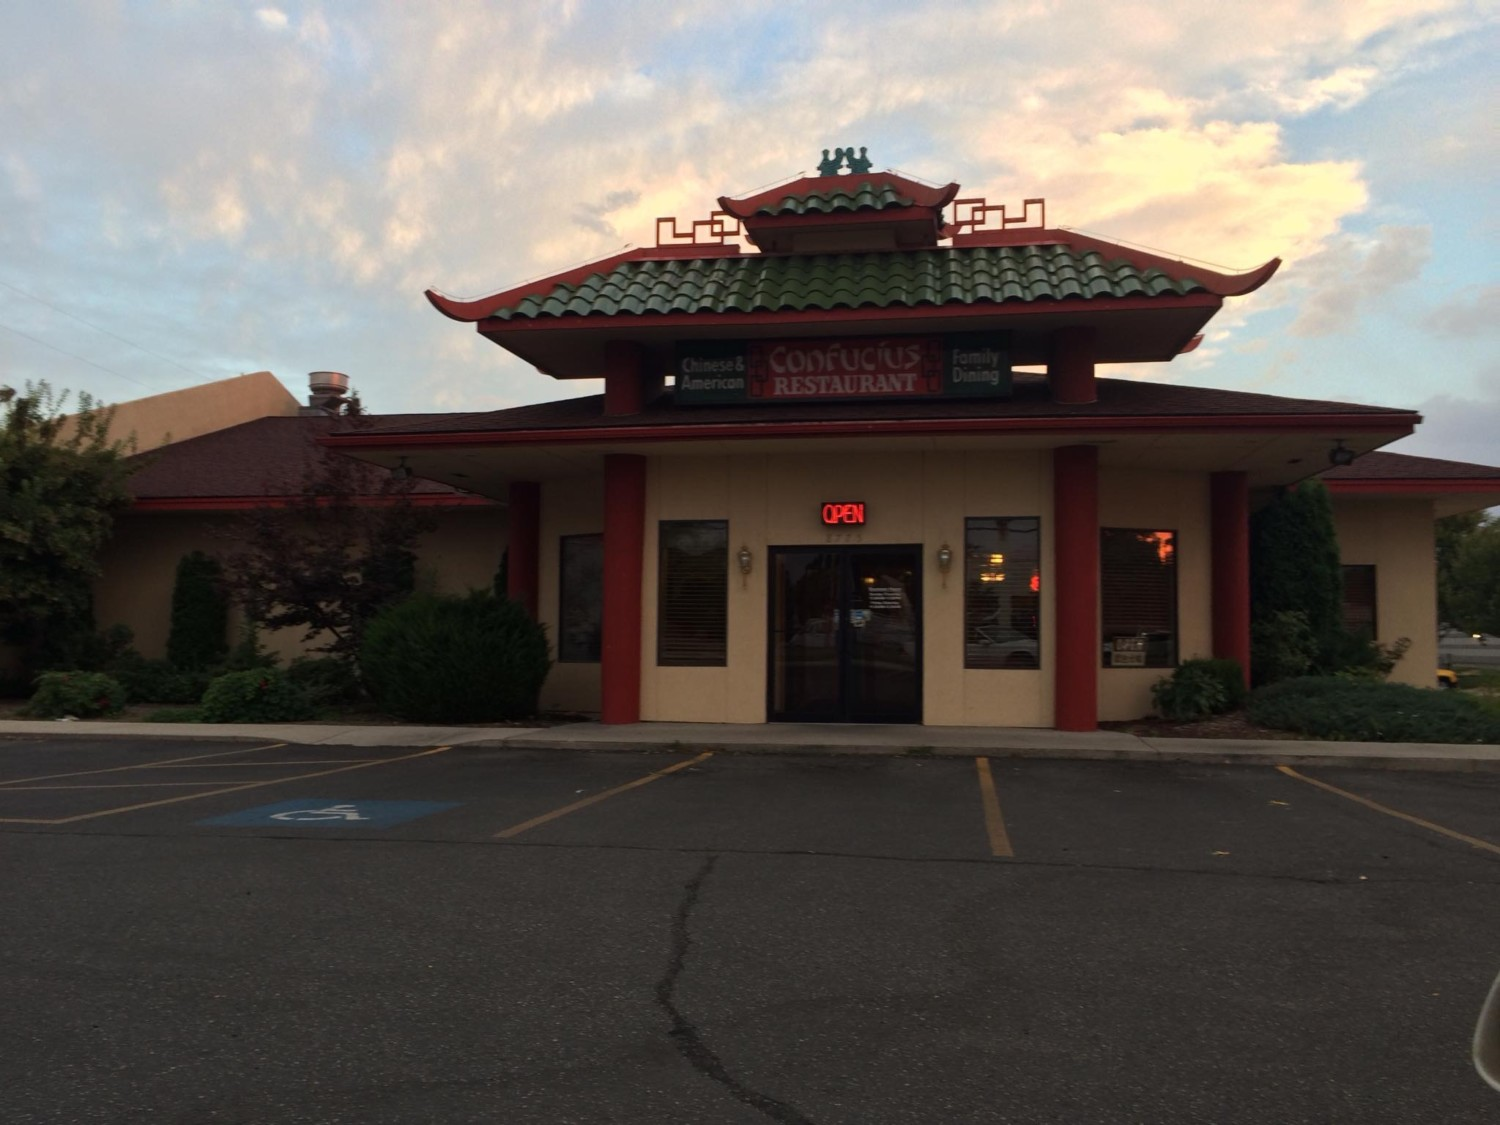 Confucius Restaurant Chinese Food In Boise Id Closes Doors